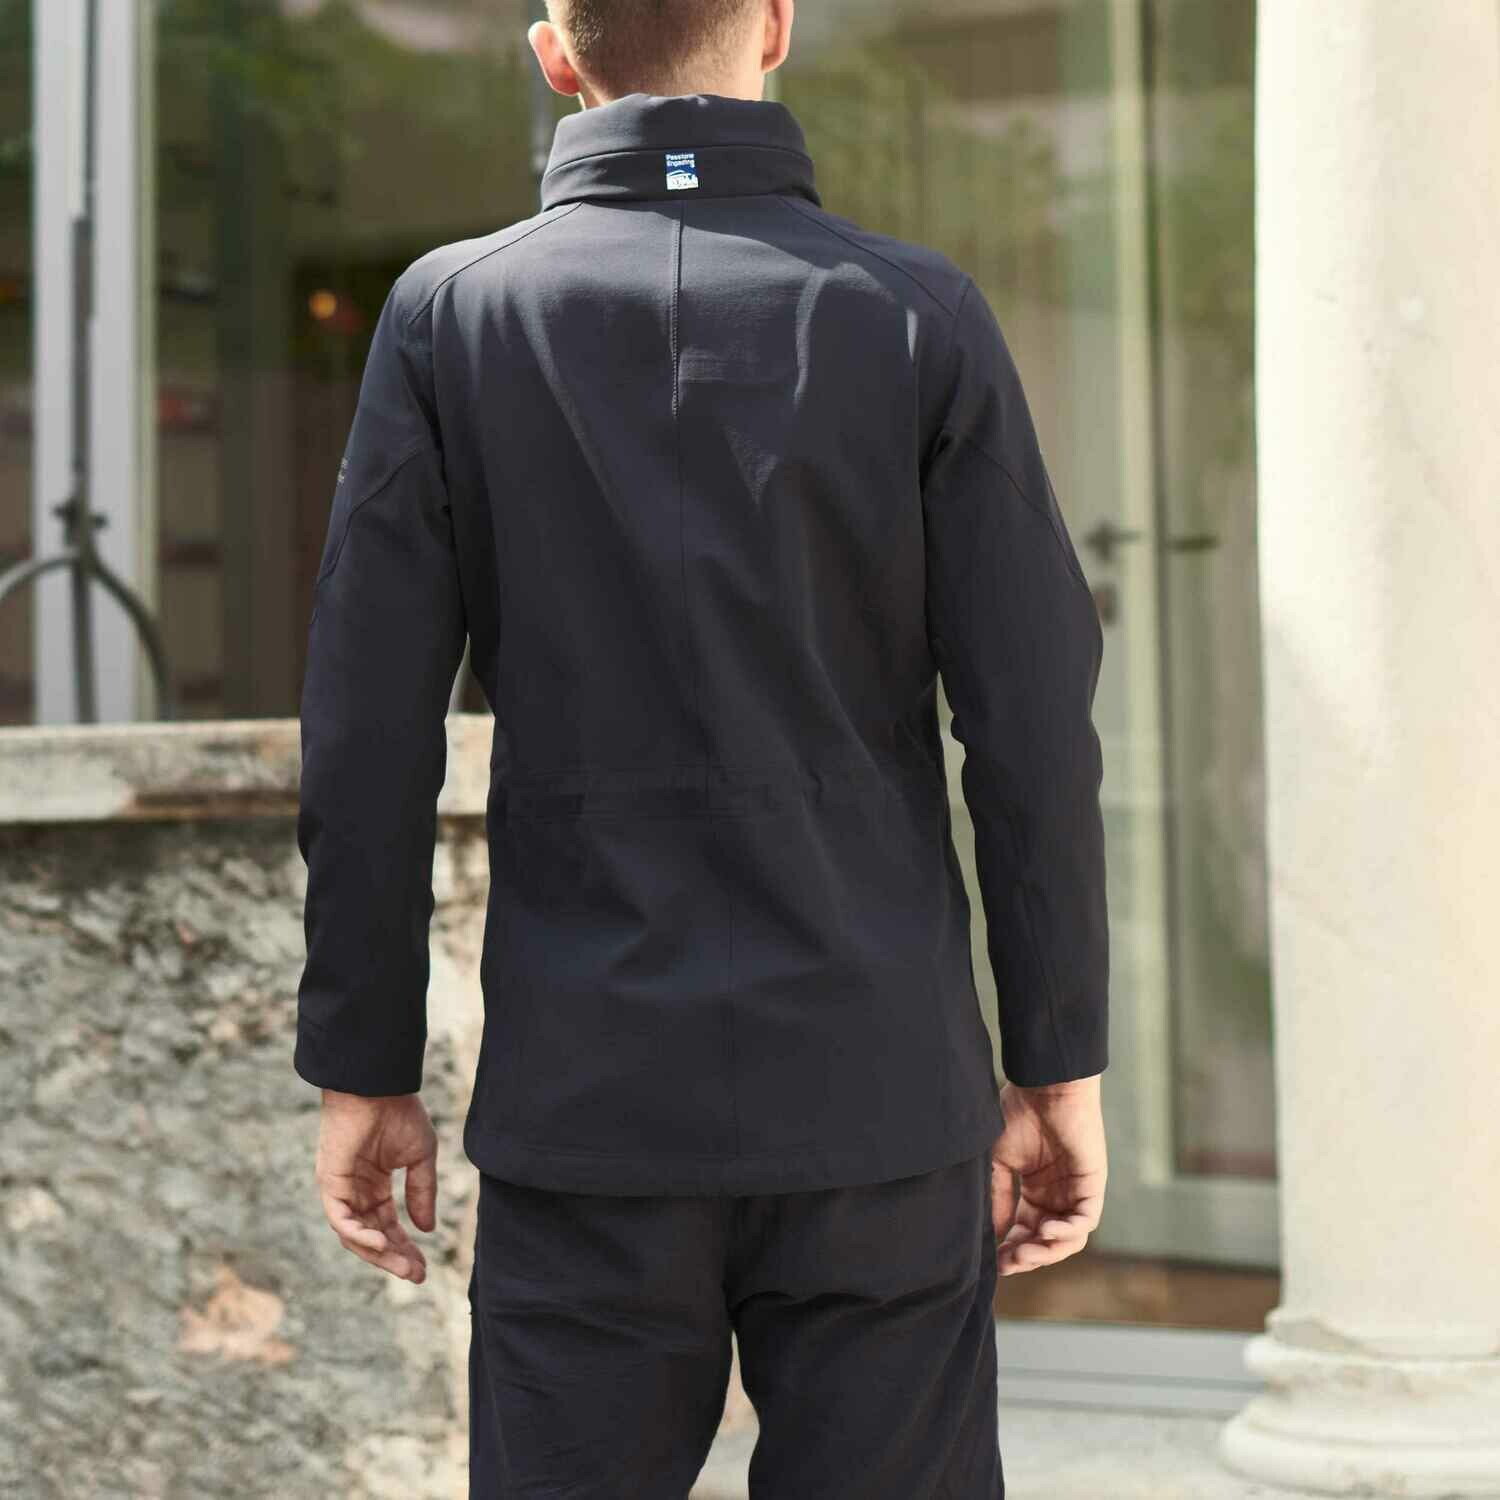 Techmerino - Zegna Sport